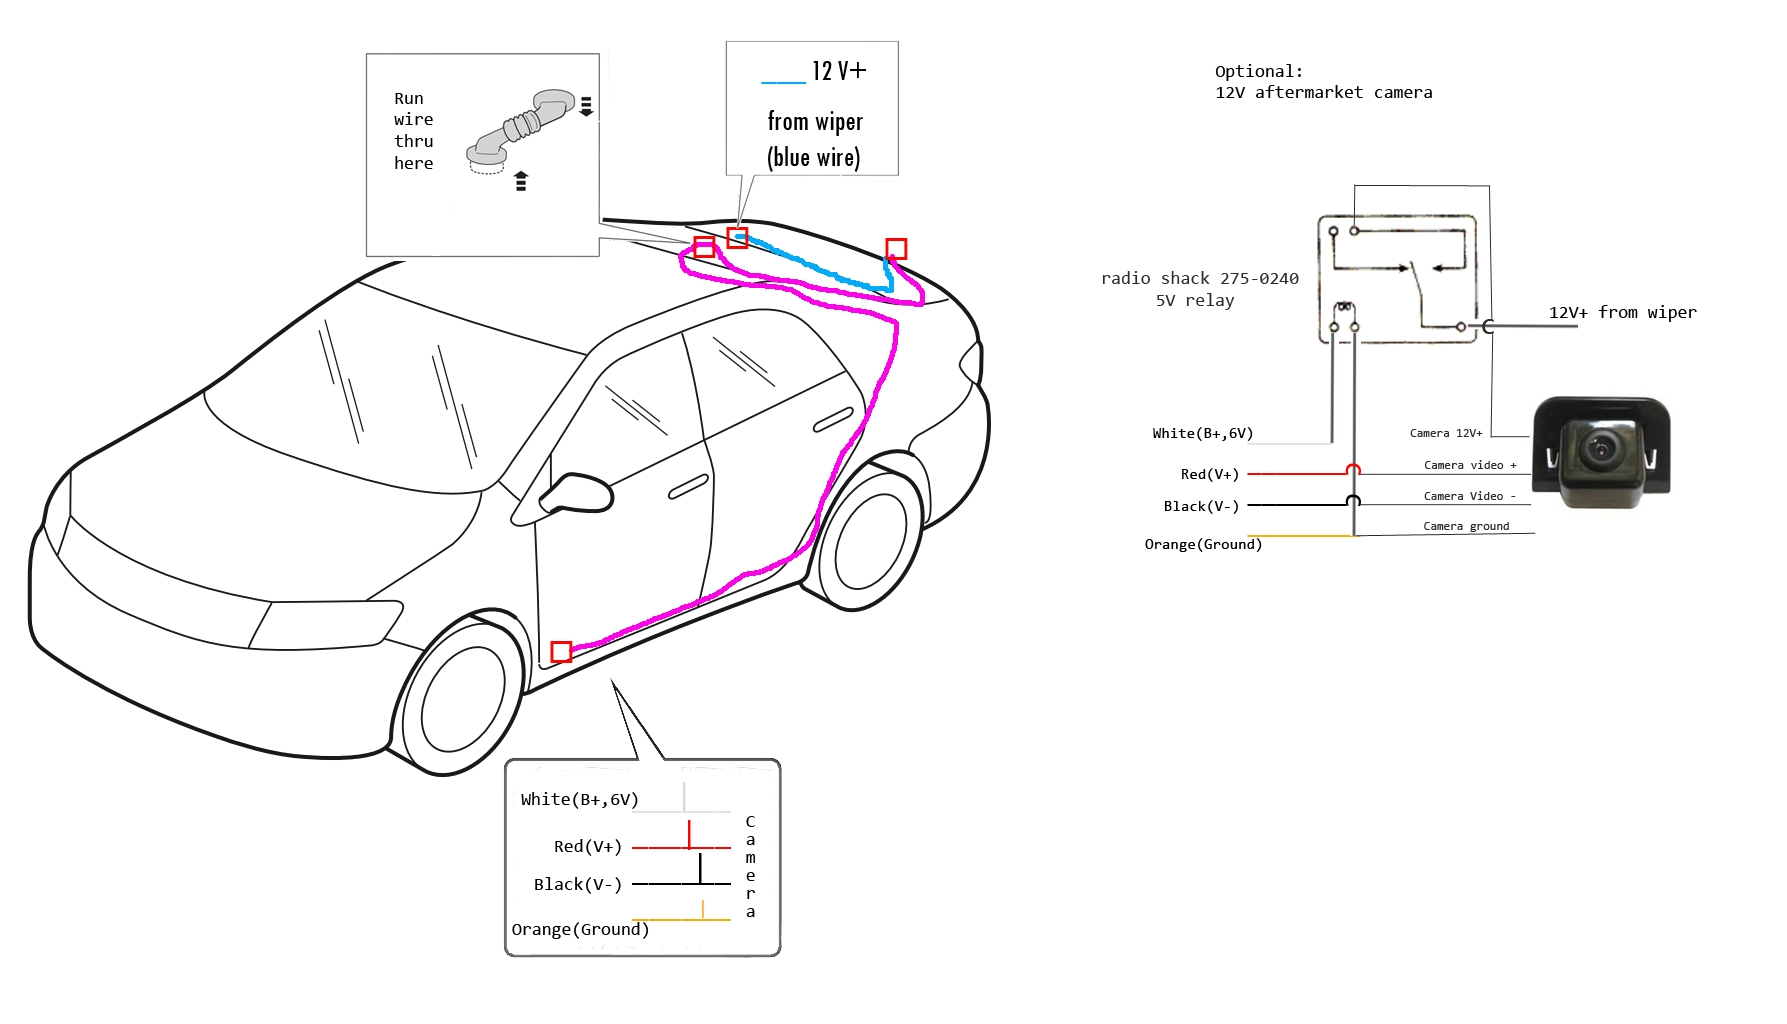 toyota tundra tailgate sti wiring diagram database toyota tundra backup camera wiring diagram